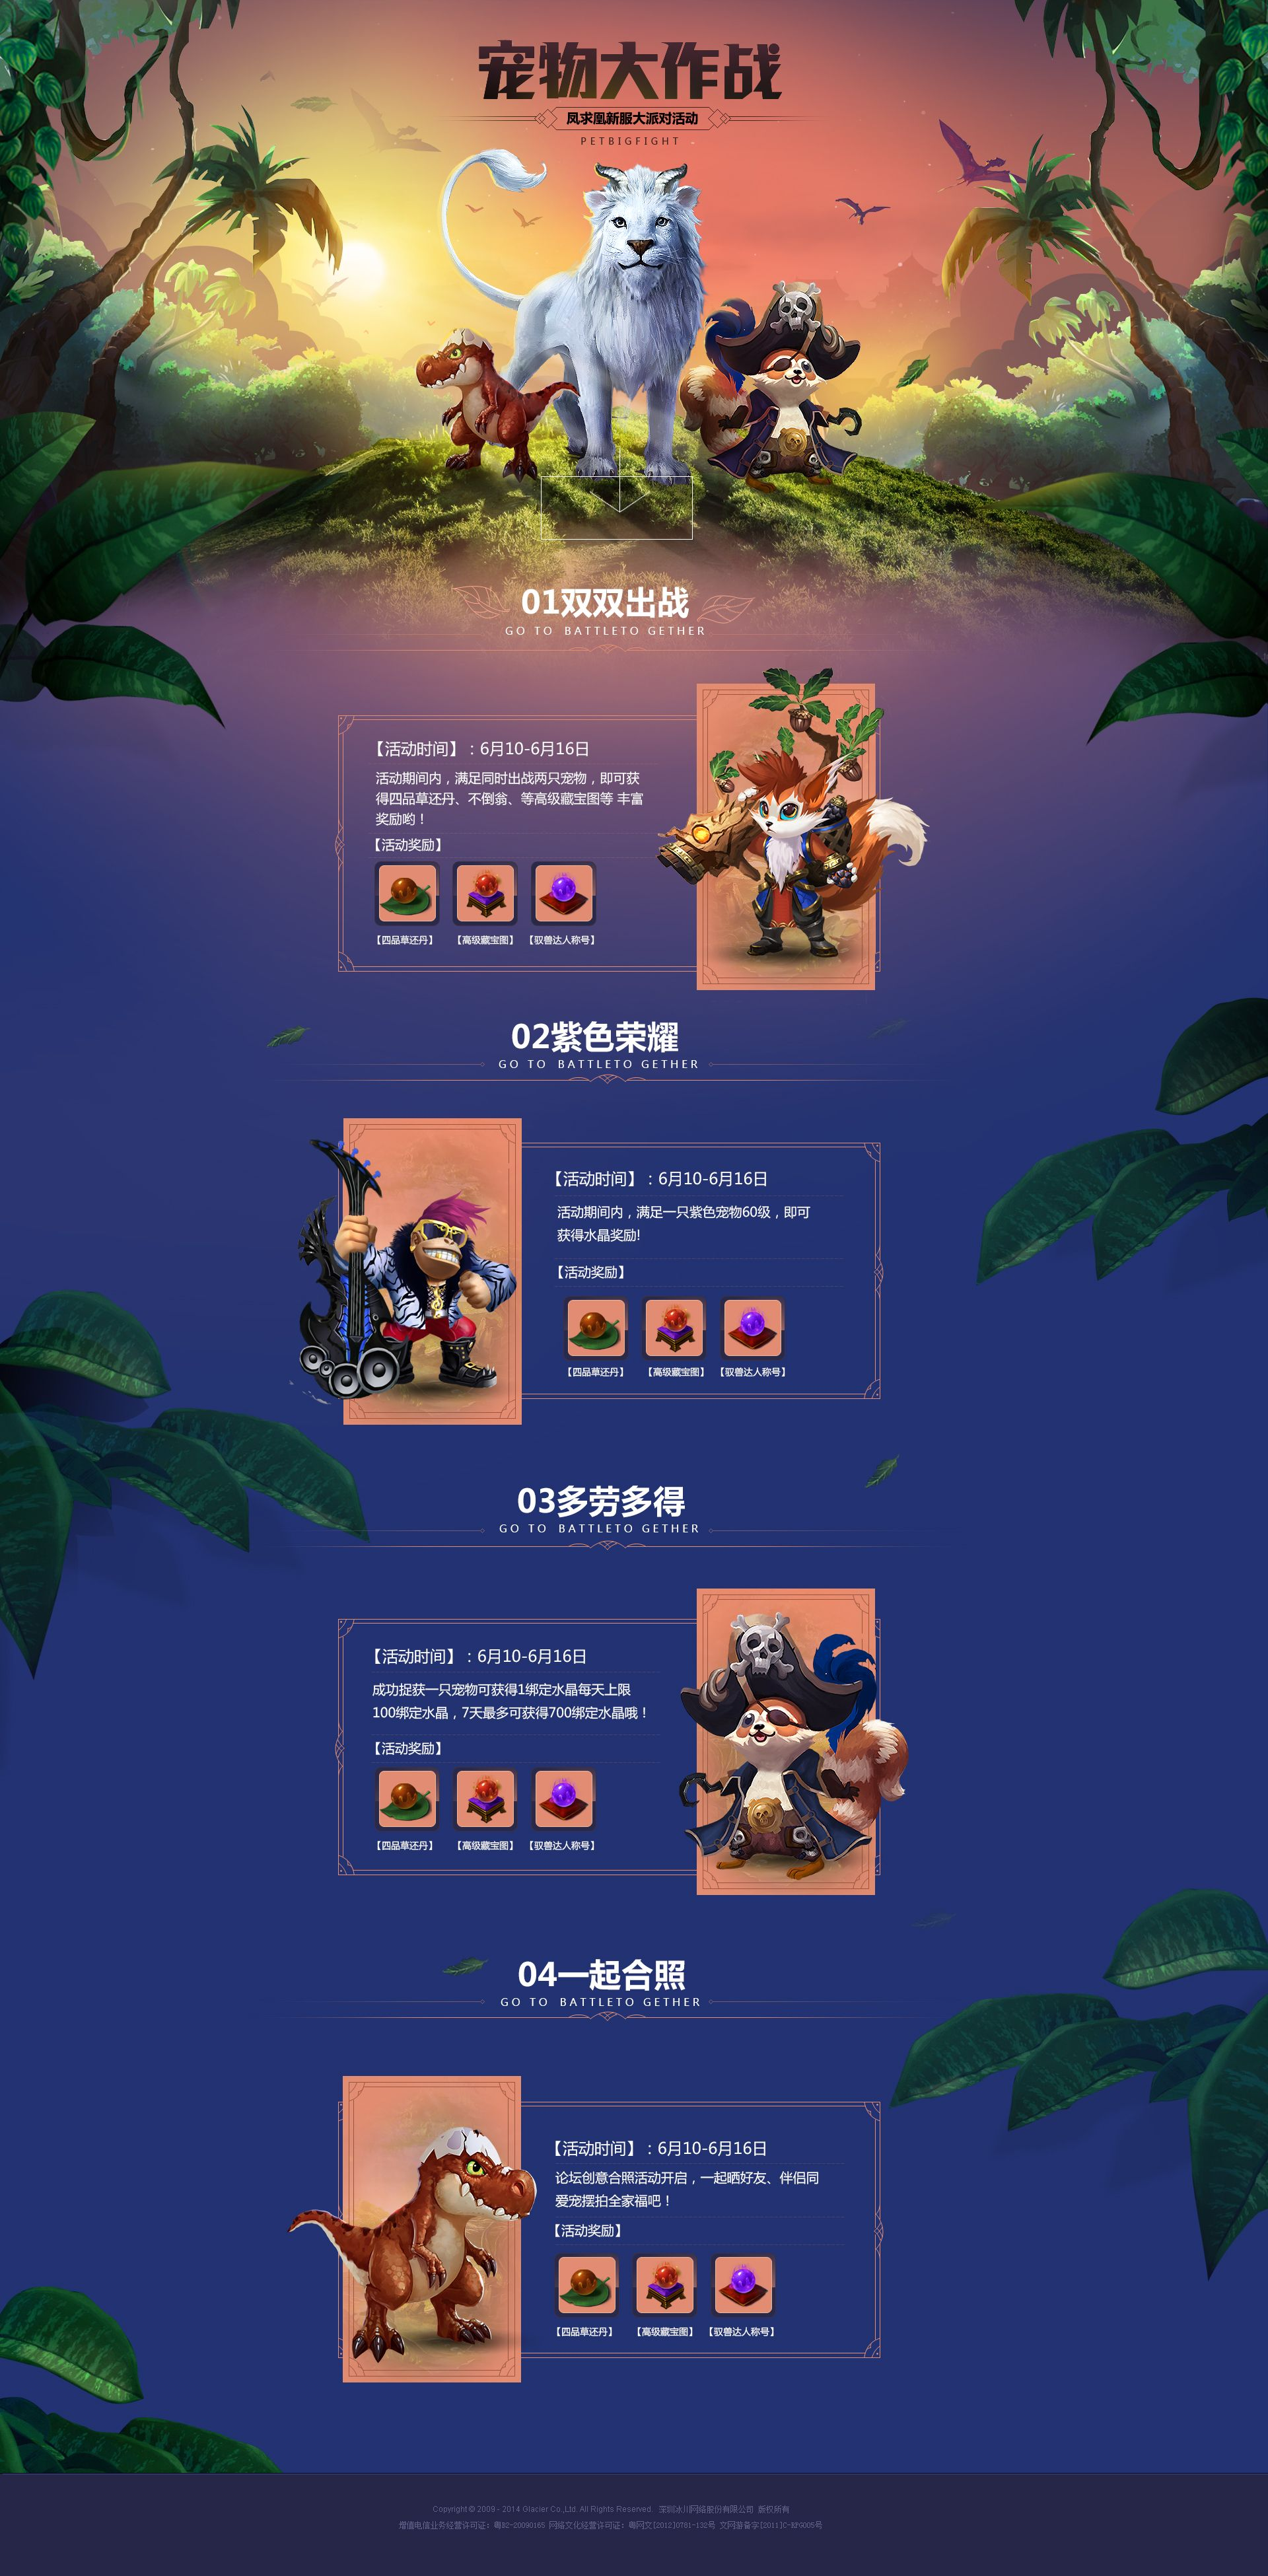 Pet Big Fight Go To Battle Togather Chinese Design Works